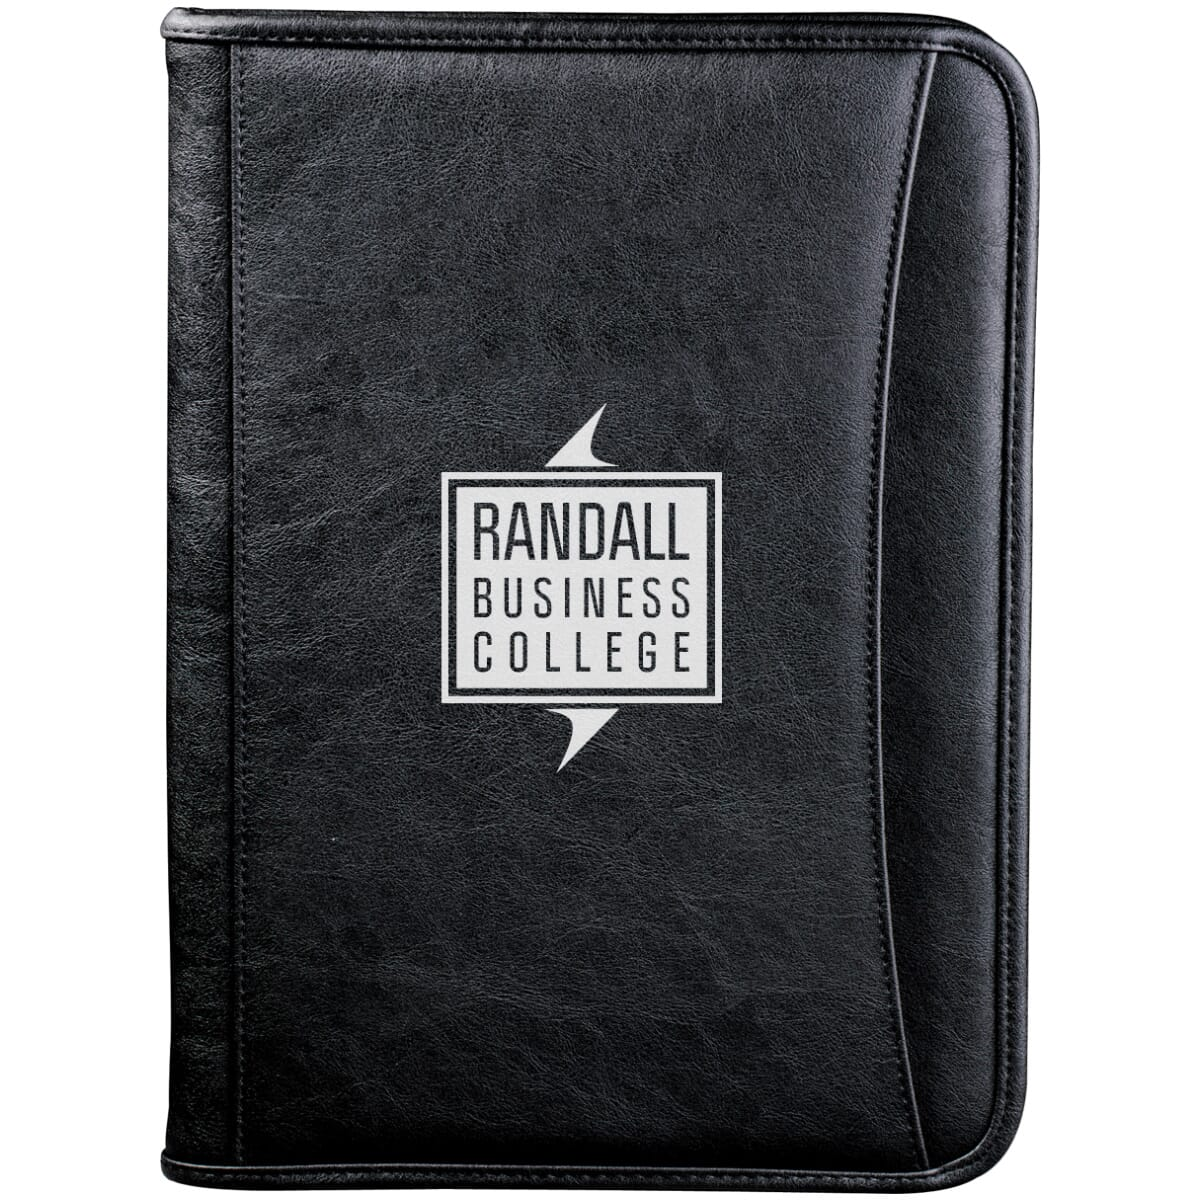 Faux leather padfolio with business logo